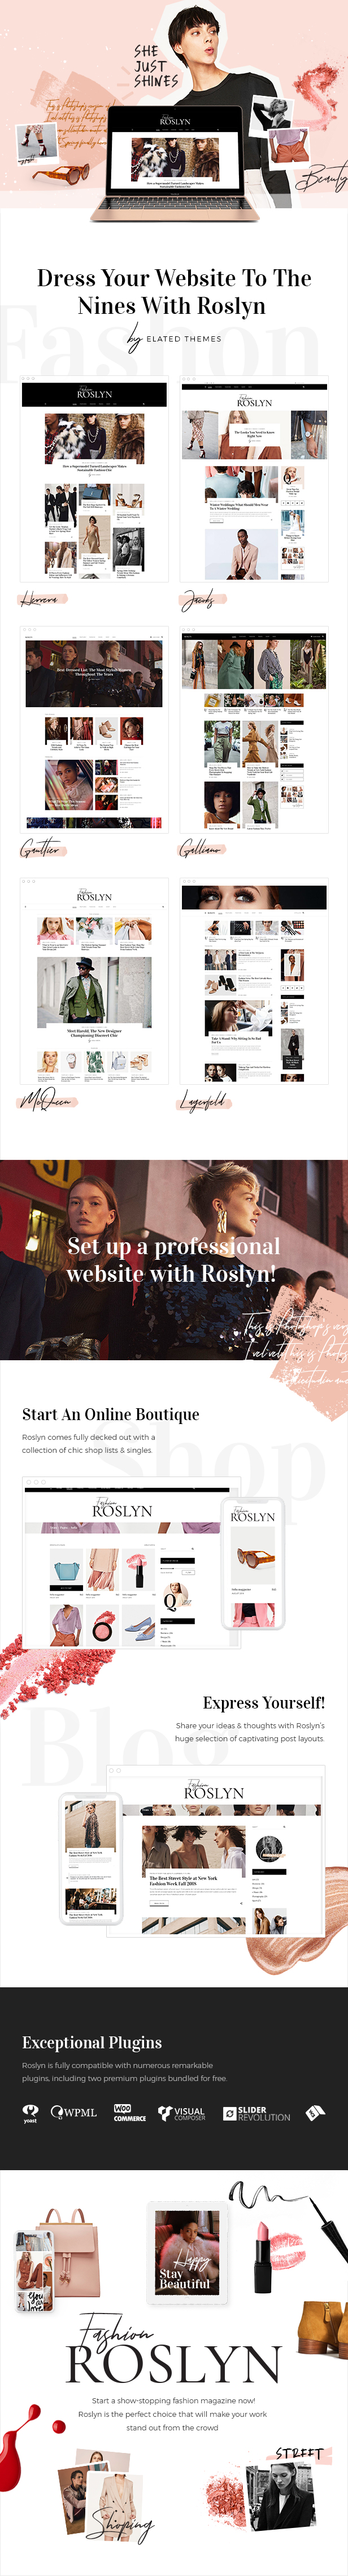 Roslyn - Fashion and Lifestyle Theme for Bloggers and Magazines - 1